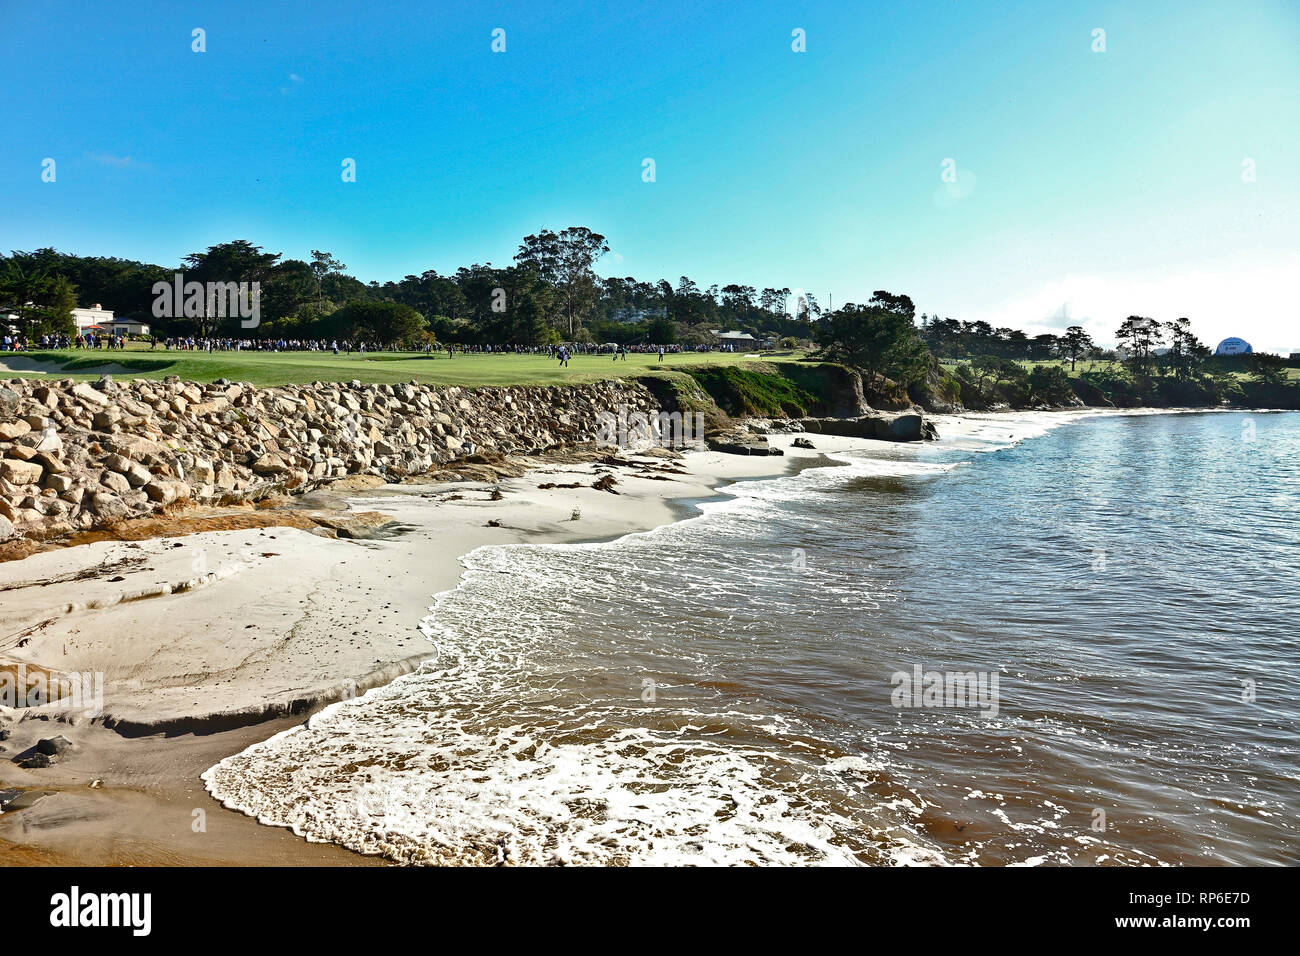 11th February, 2019  Pebble Beach Golf Links, CA, USA  The 4th hole at Pebble Beach Golf Course showing the beach at the Beach Club during  the AT&T P - Stock Image